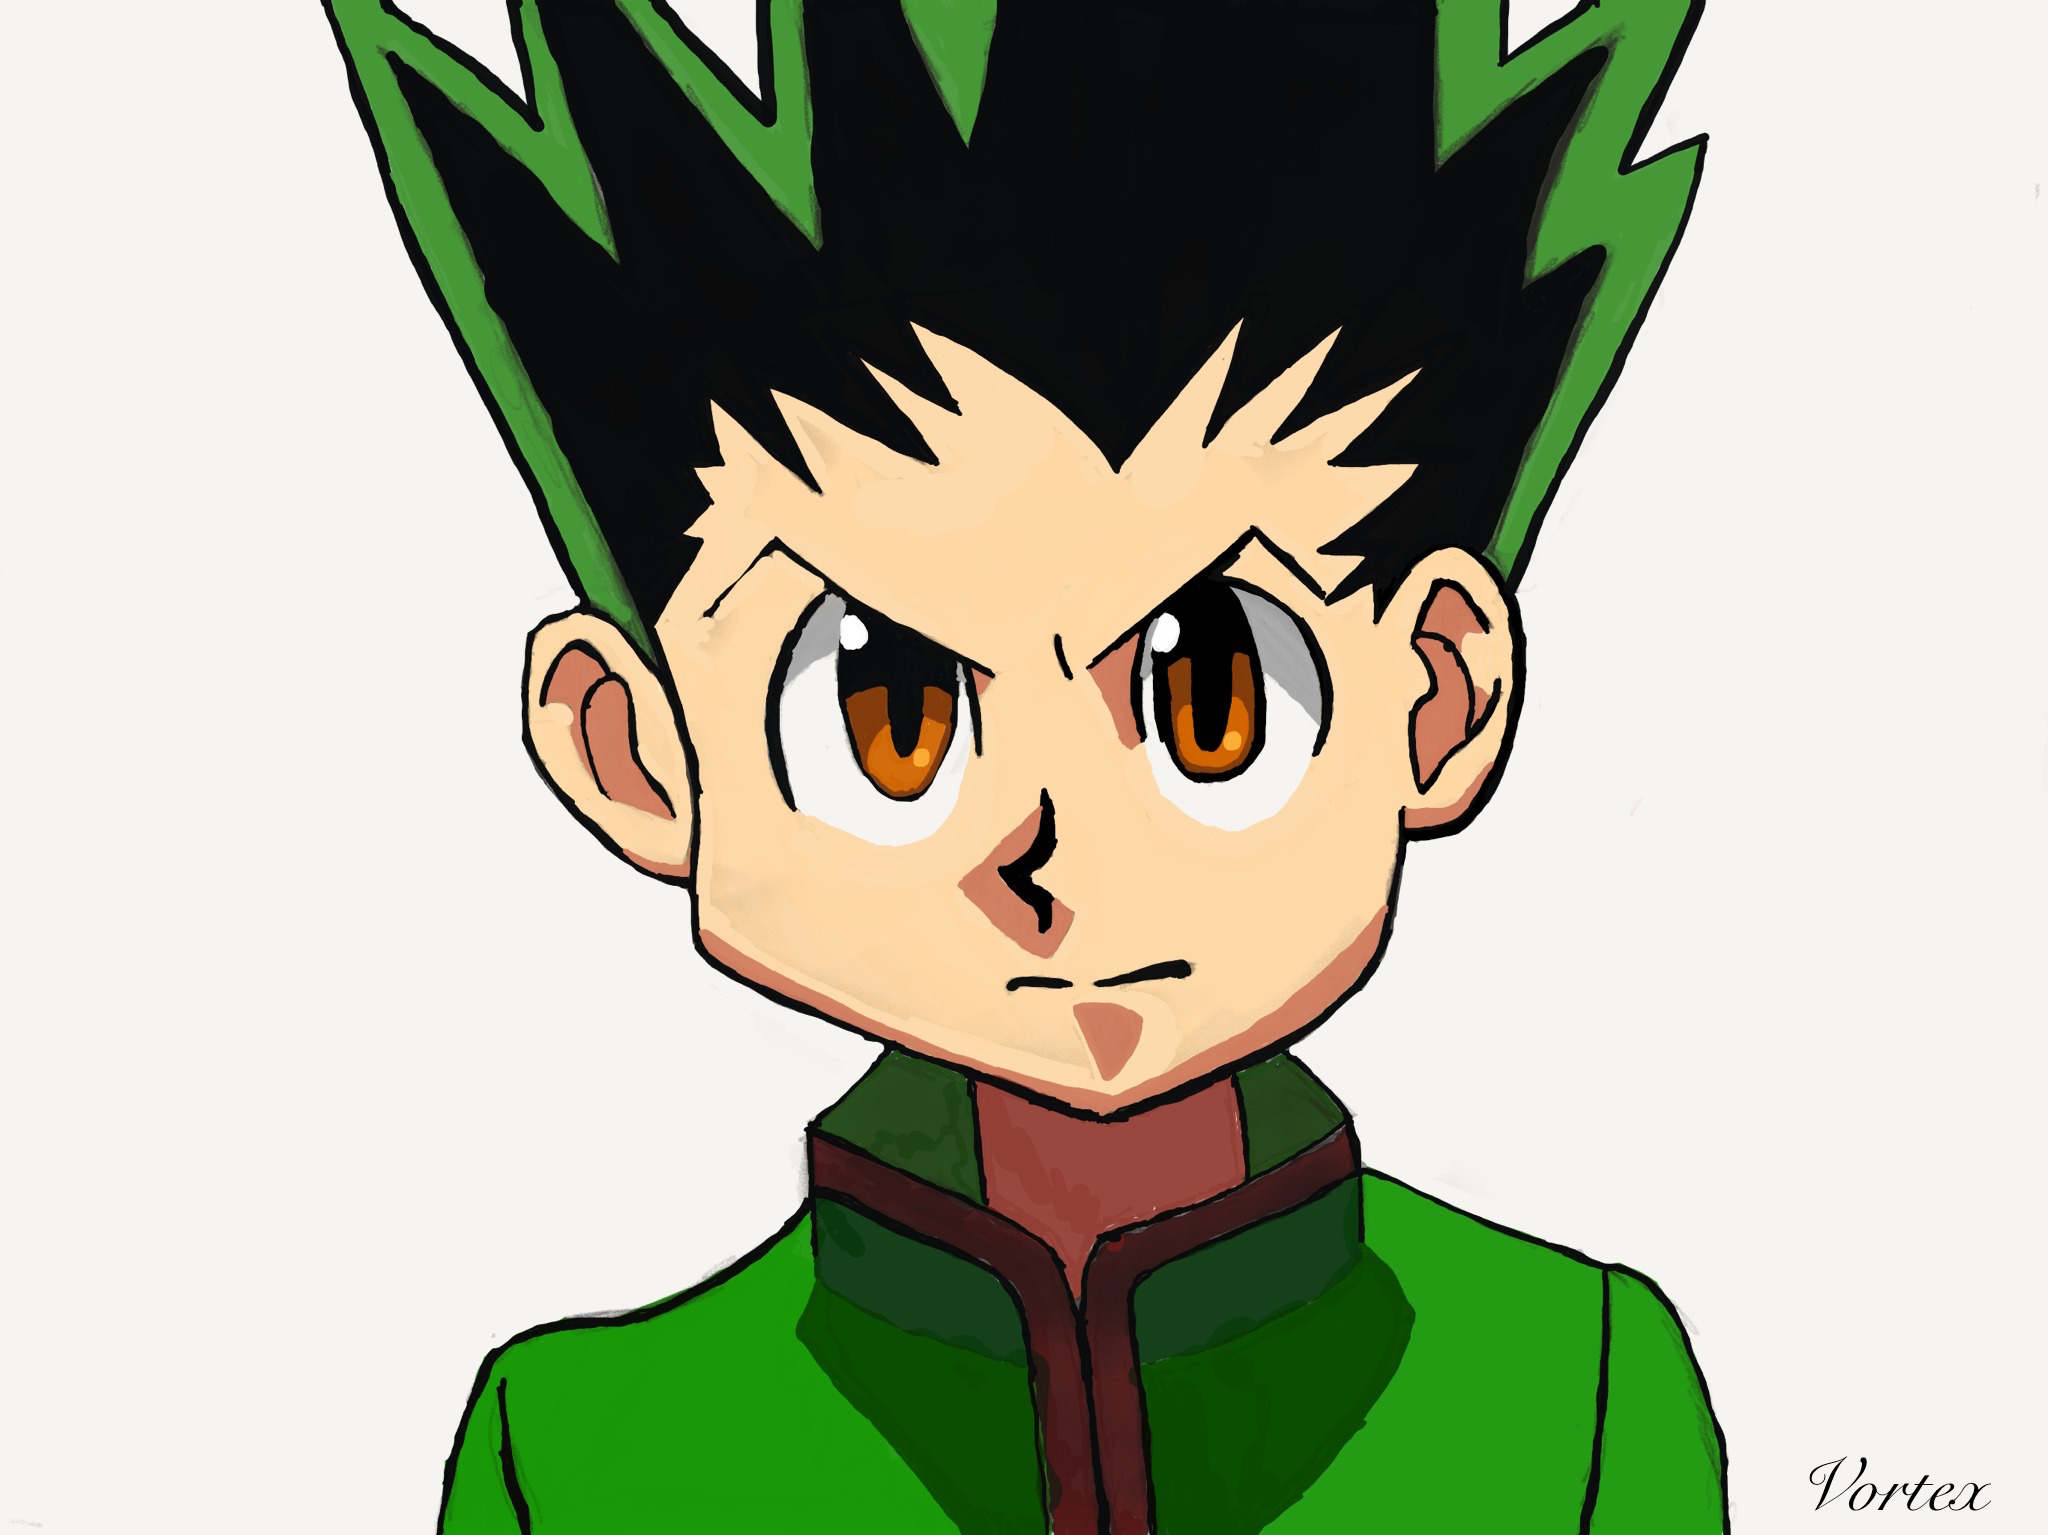 2048x1535 drawing of gon from hunter x hunter